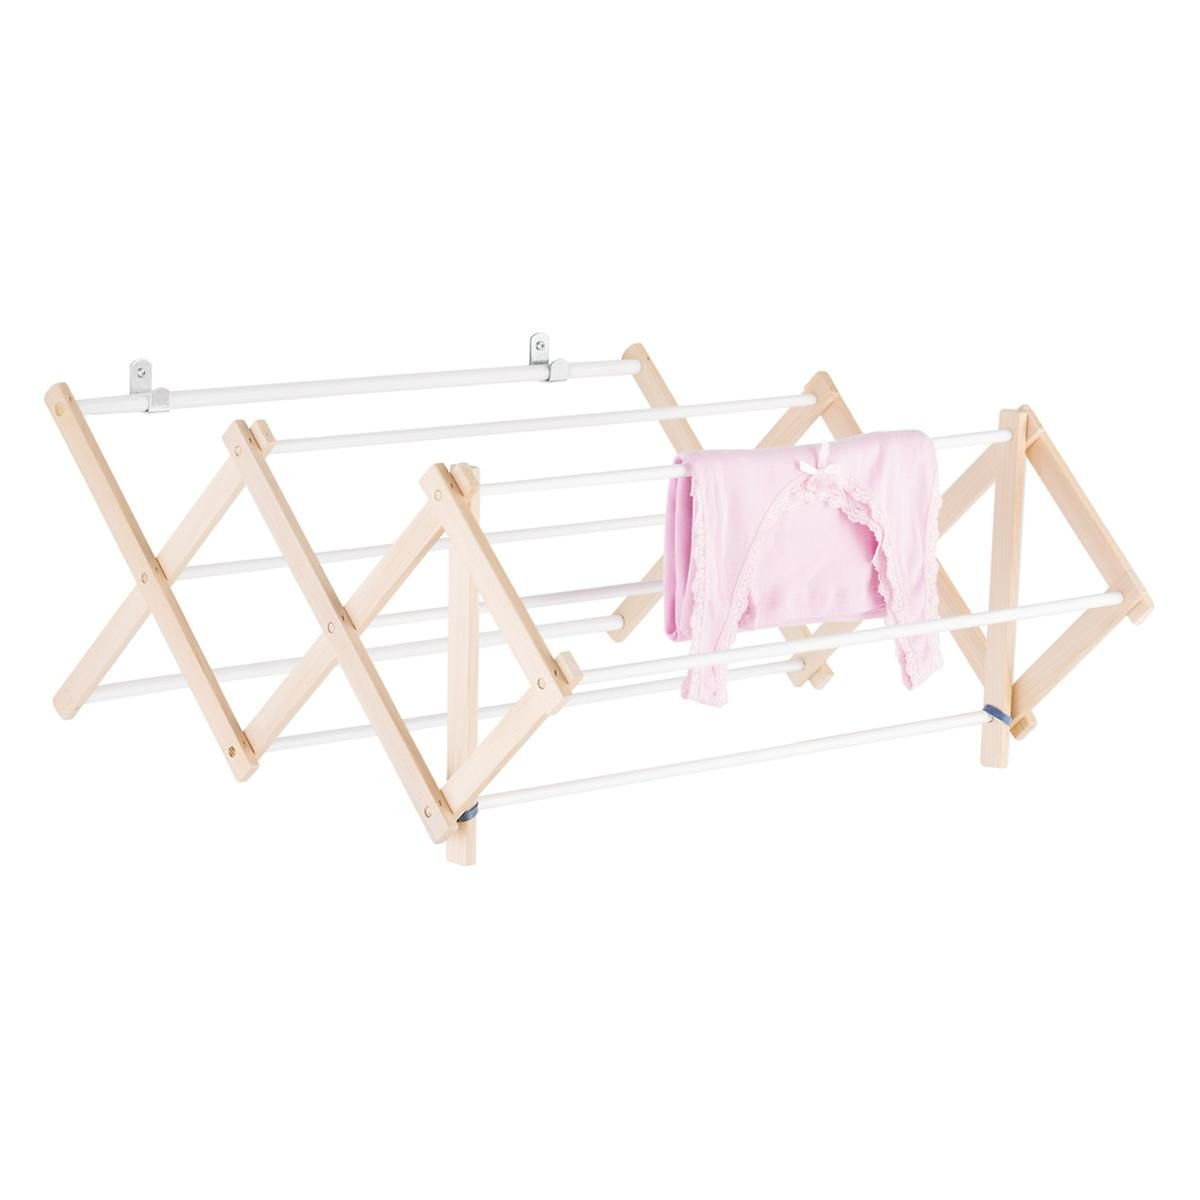 Dowel wooden wallmounted u floor clothes drying rack kitchen